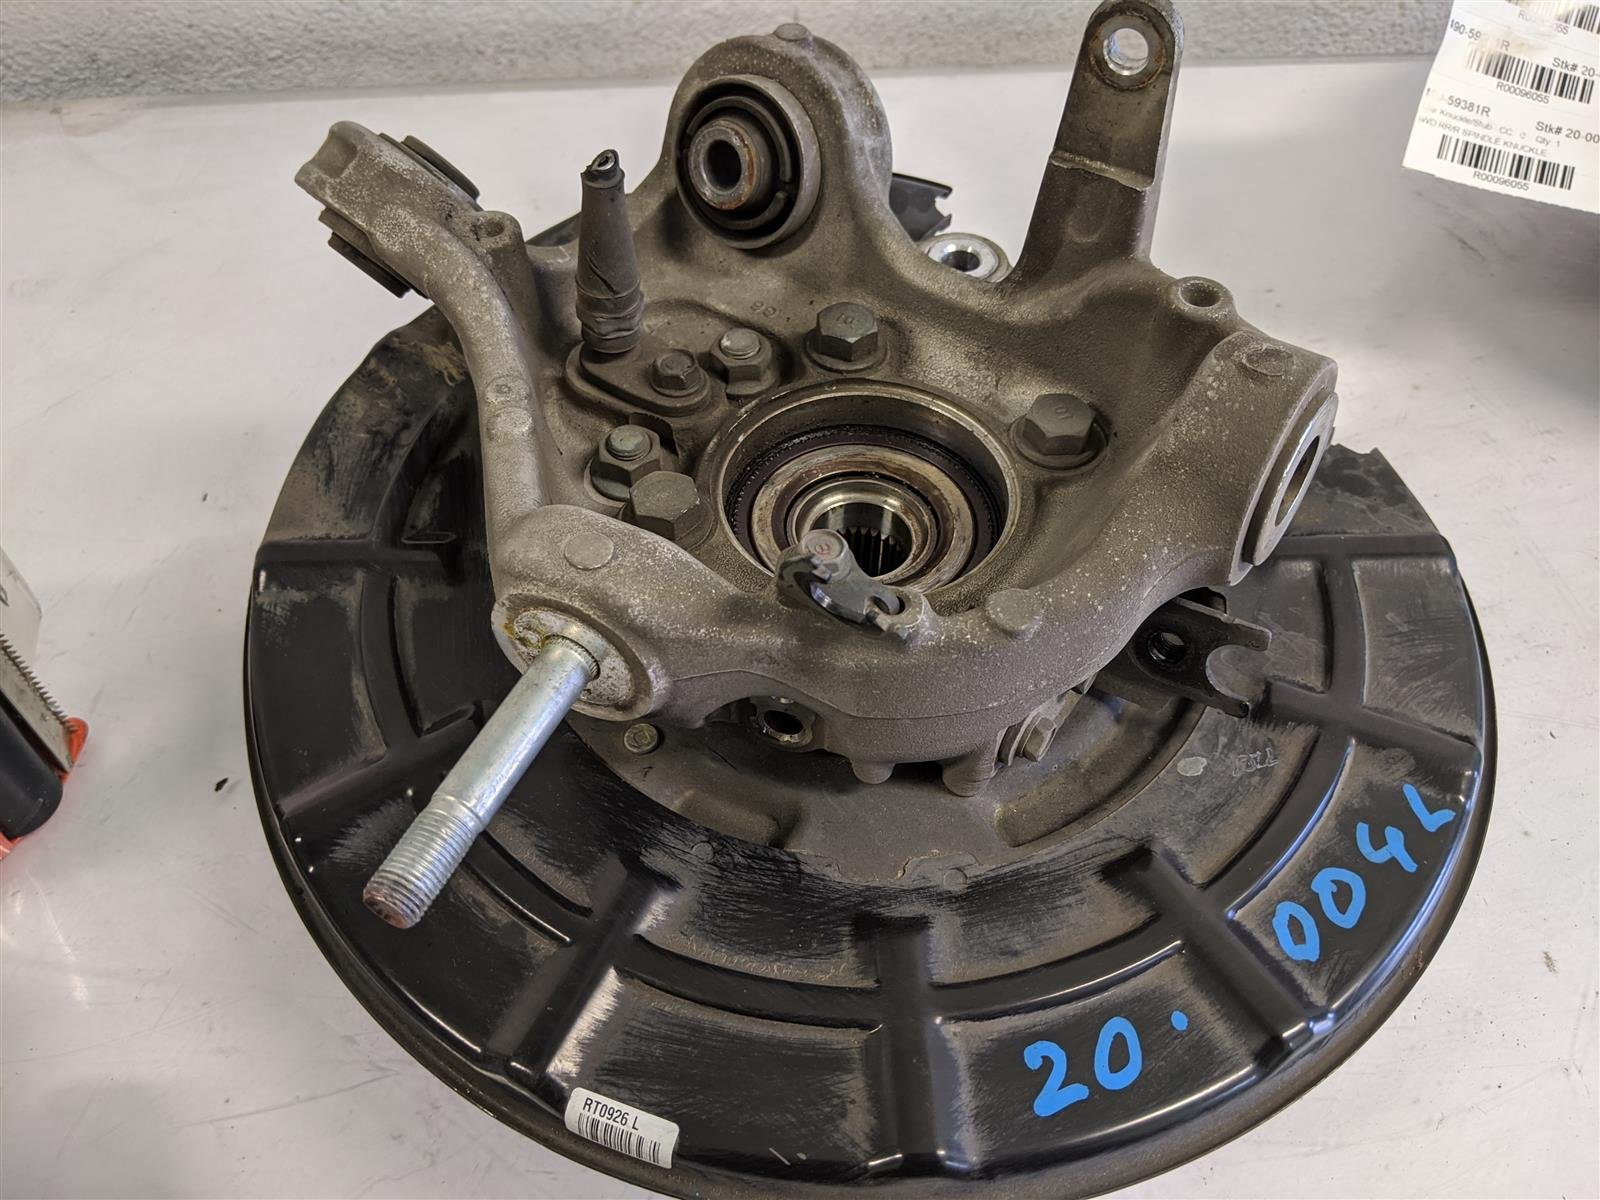 2018 Honda Pilot Awd Rear Driver Spindle Knuckle Replacement